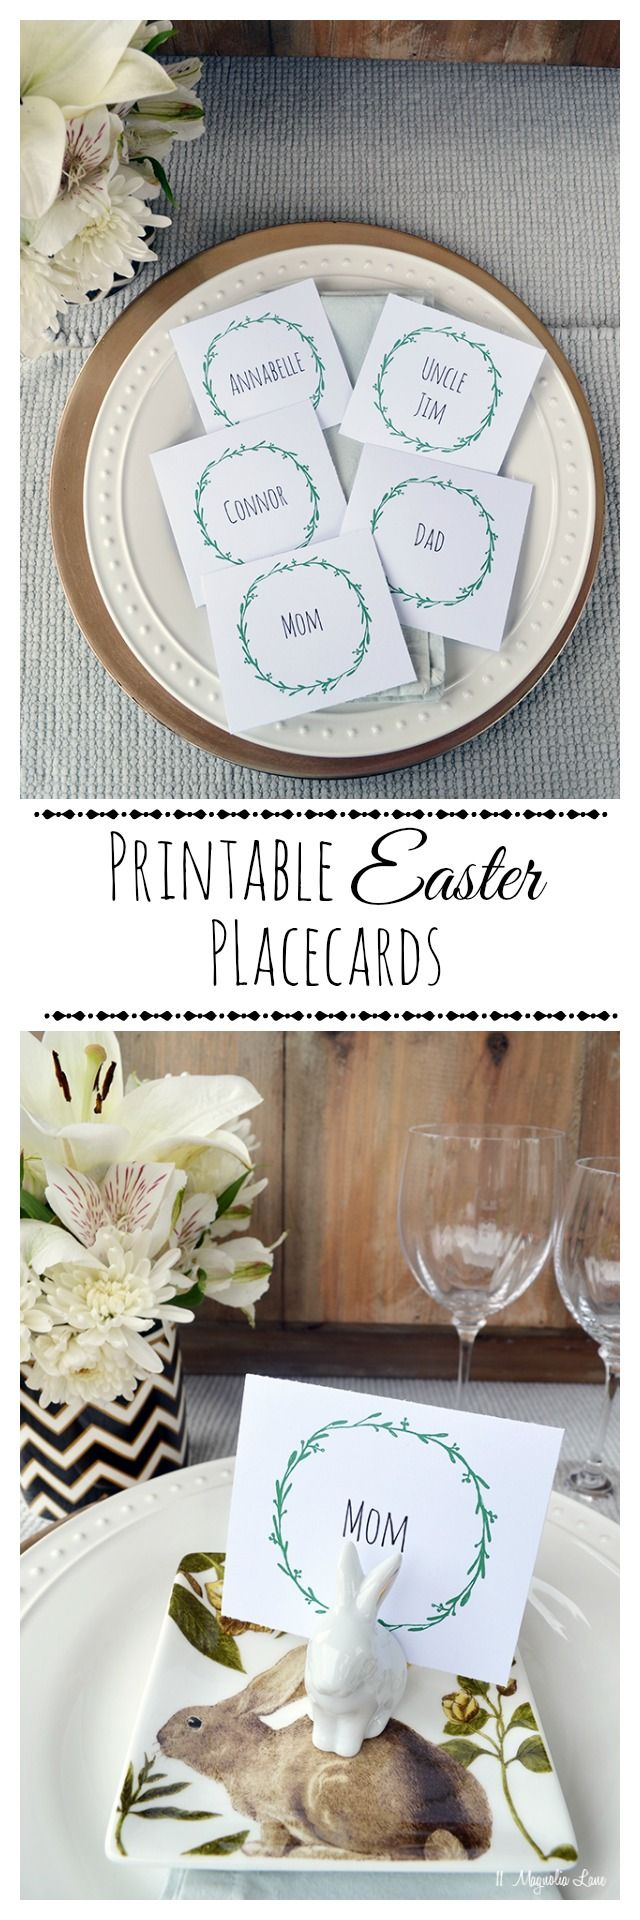 Free printable wreath place cards are perfect for your Easter (or other holiday) table.  Print on heavy white cardstock and cut into squares; you can also add text using photo editing software (Animatic Small Caps font is a good choice).